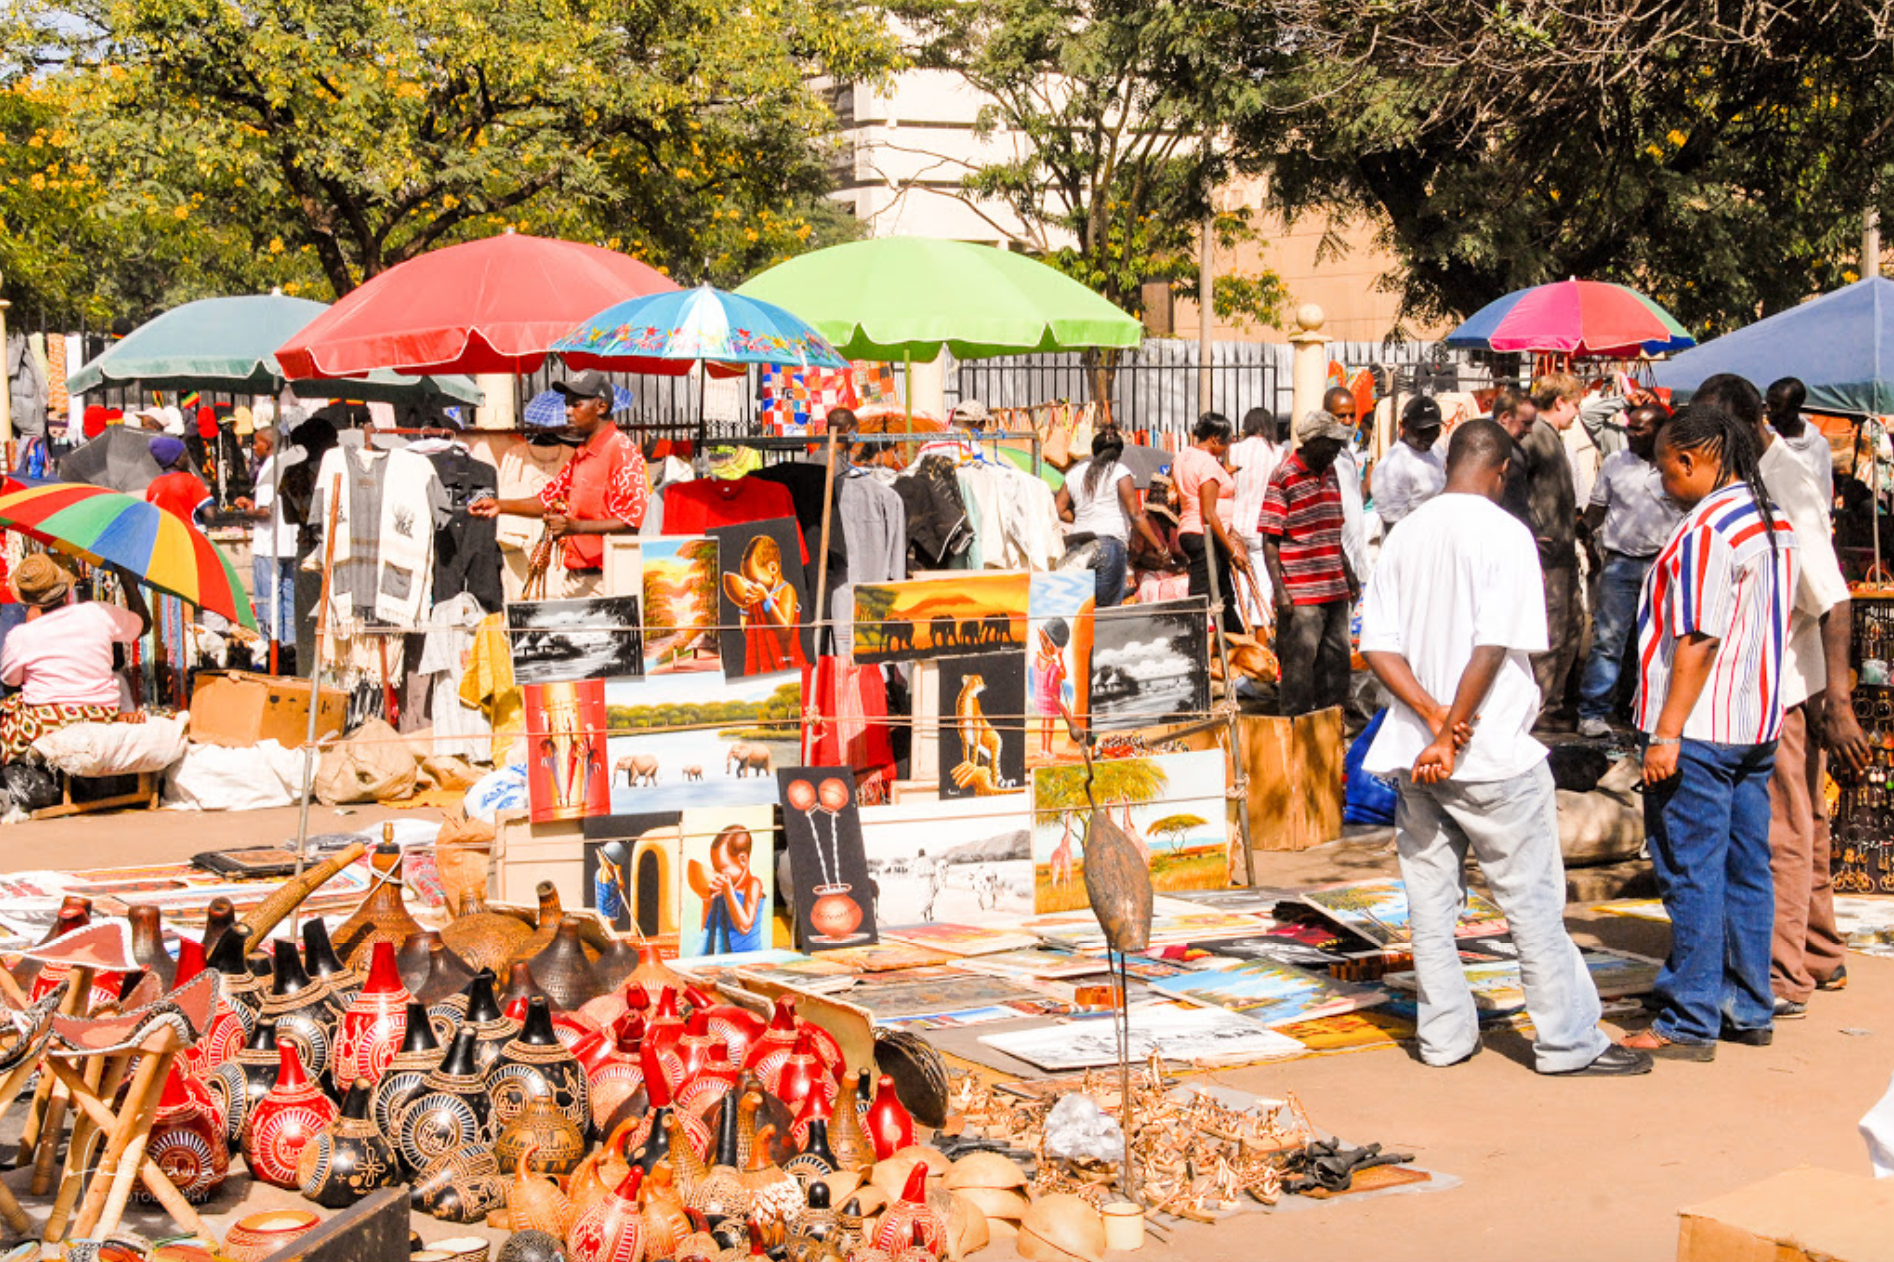 A Guide to The Maasai Market, Nairobi's Flea Market